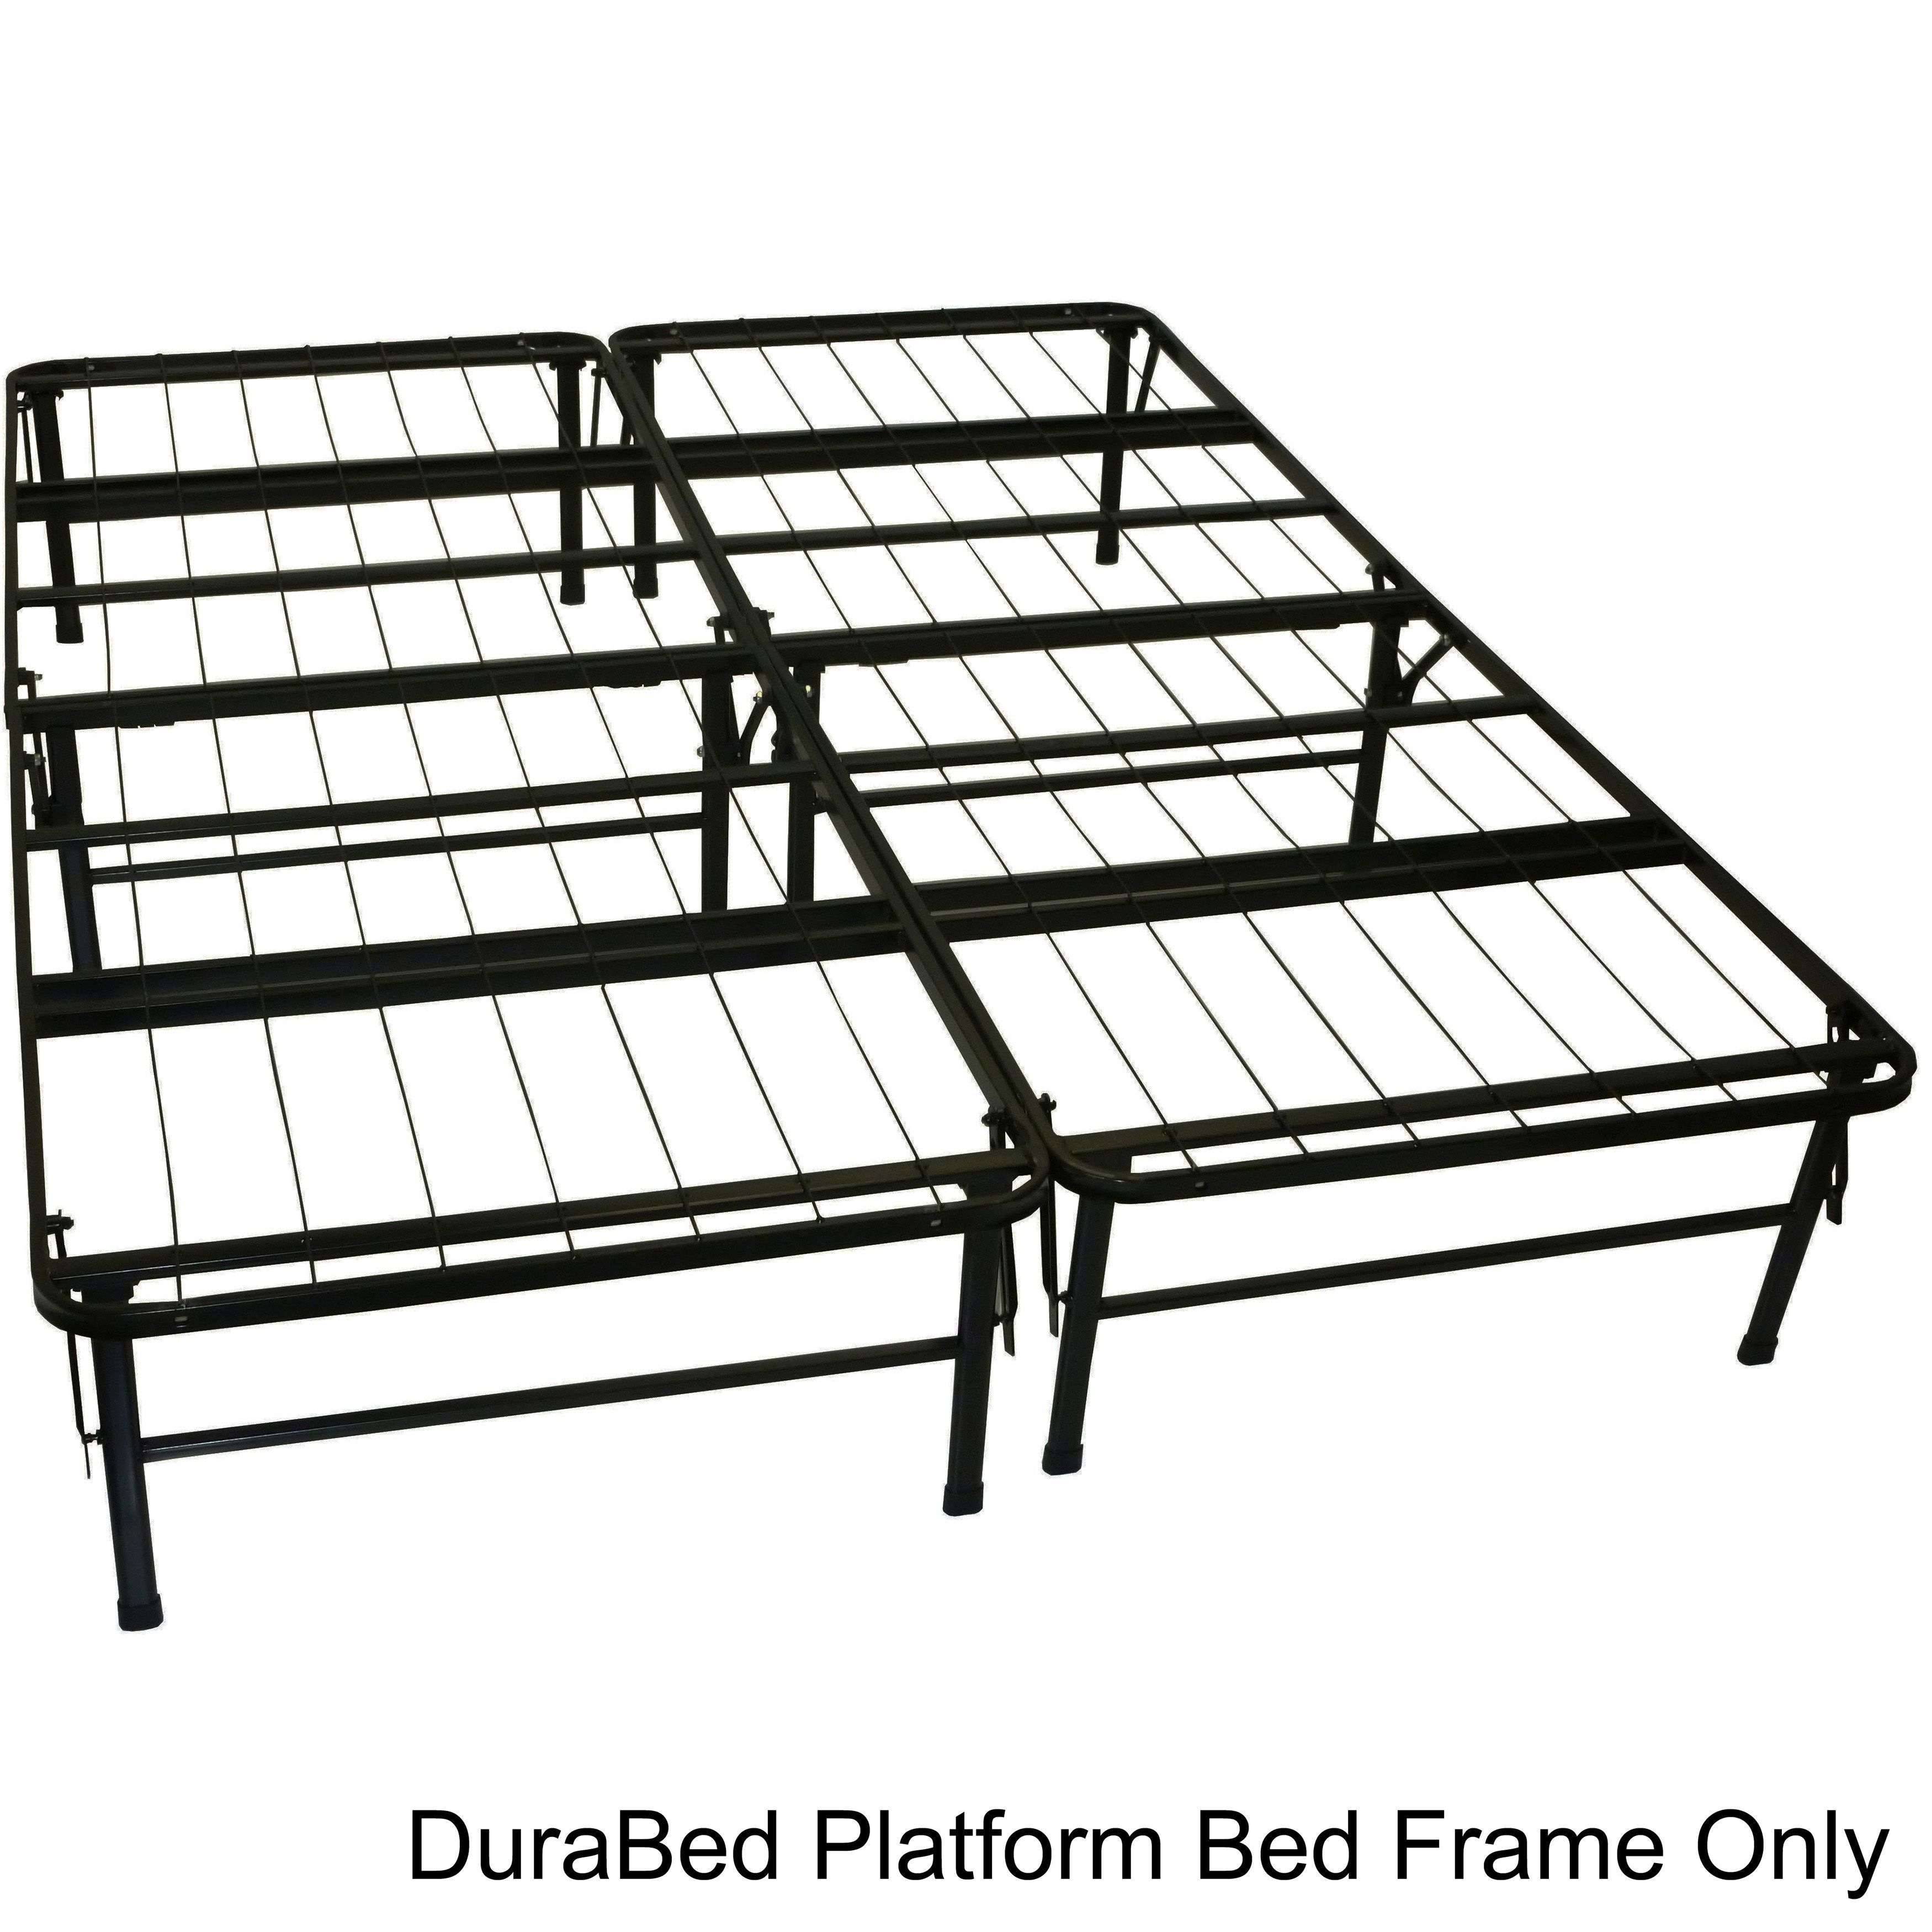 Durabed Queen Foundation And Frame In One Mattress Support Bed Frame Foldable Bed Metal Bed Frame Mattress Support